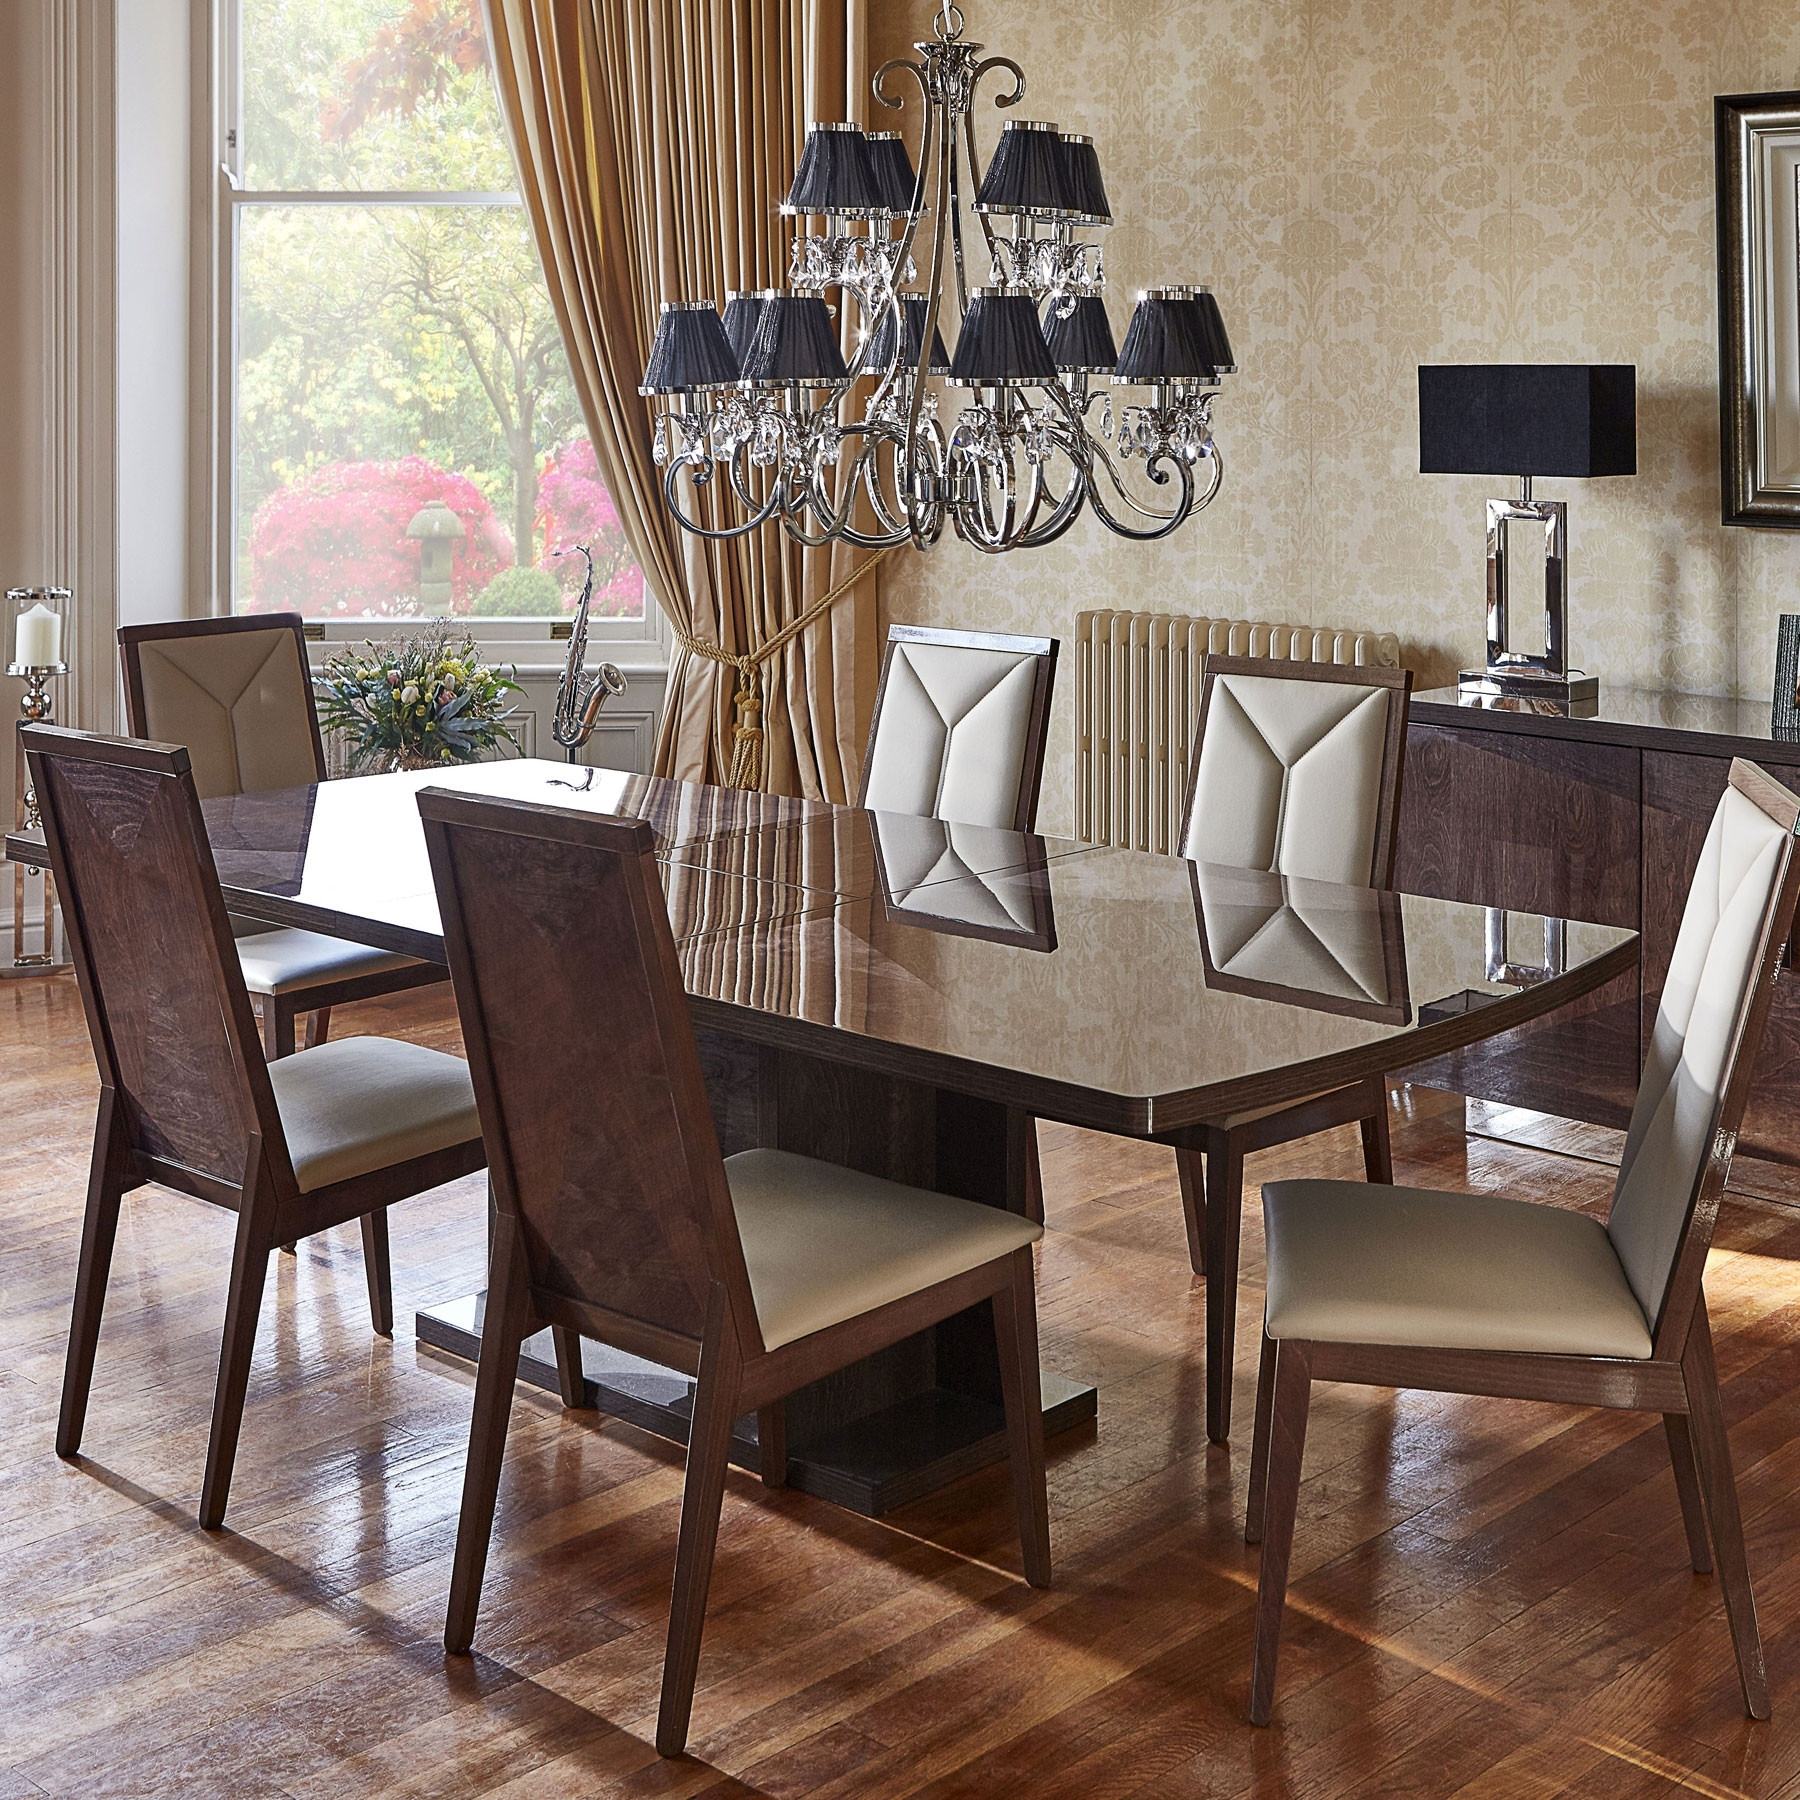 Vogue High Gloss Extending Dining Table & 6 Chairs with regard to Most Popular High Gloss Extending Dining Tables